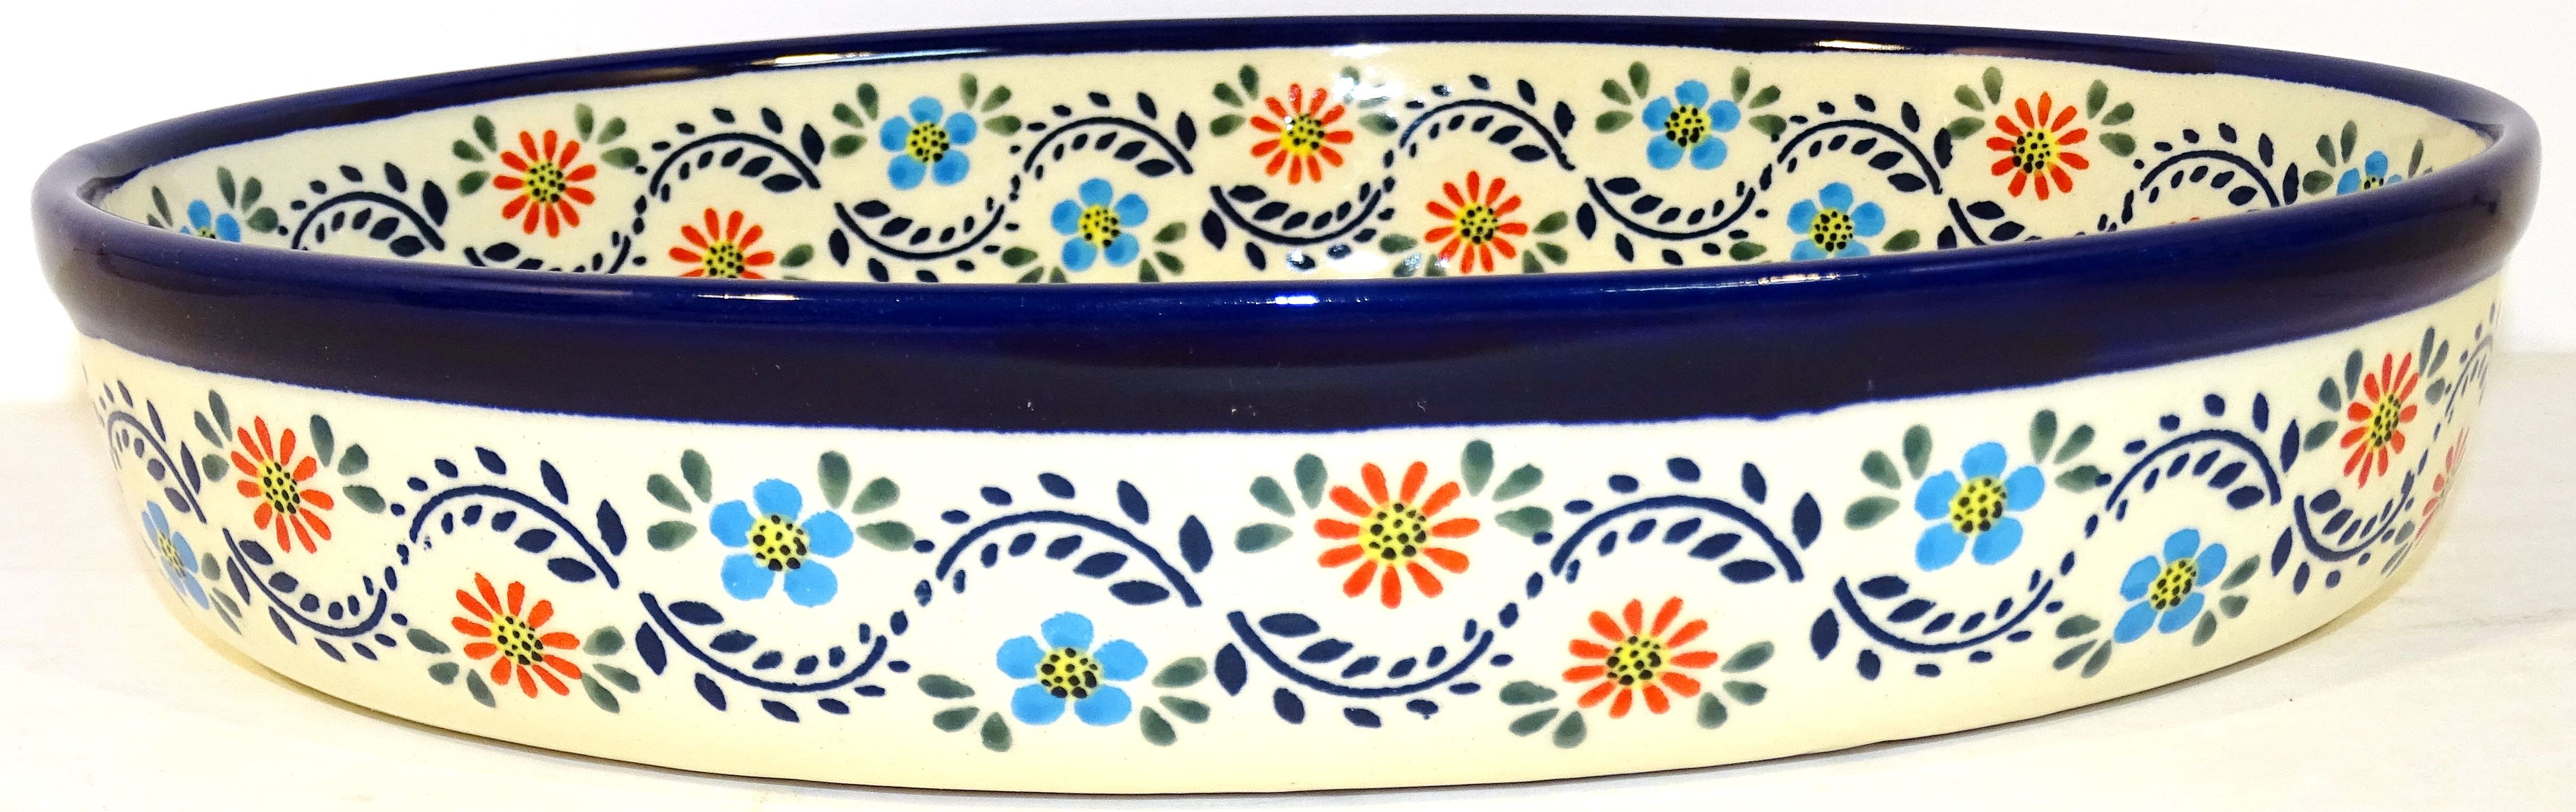 """Pottery Avenue 11"""" Oval Baker - Side View - 349-1145A Heritage Home"""